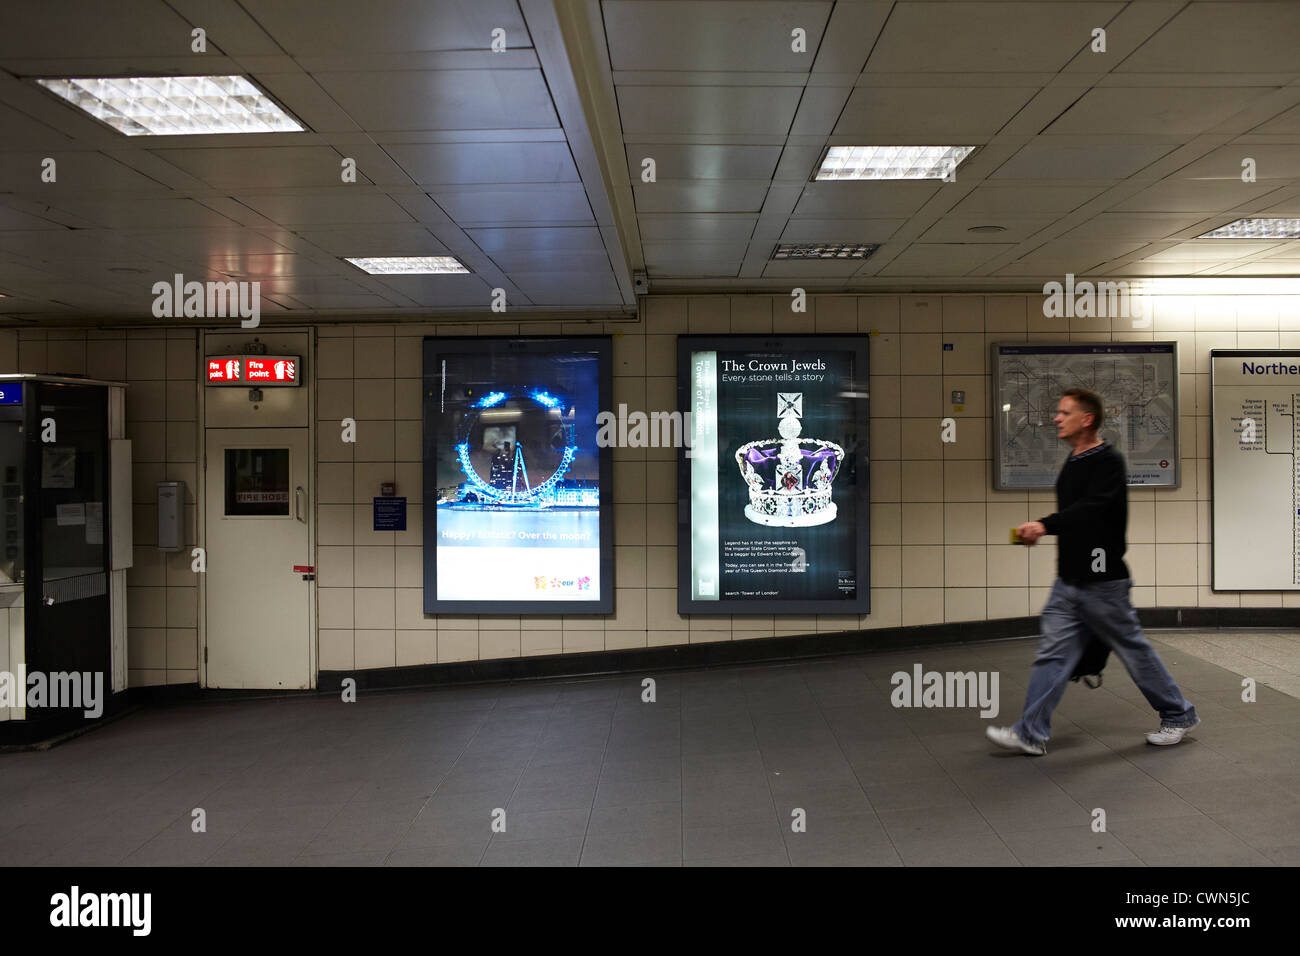 Adshells, Advertising hoardings and back-lit poster and design on the street of London UK. - Stock Image